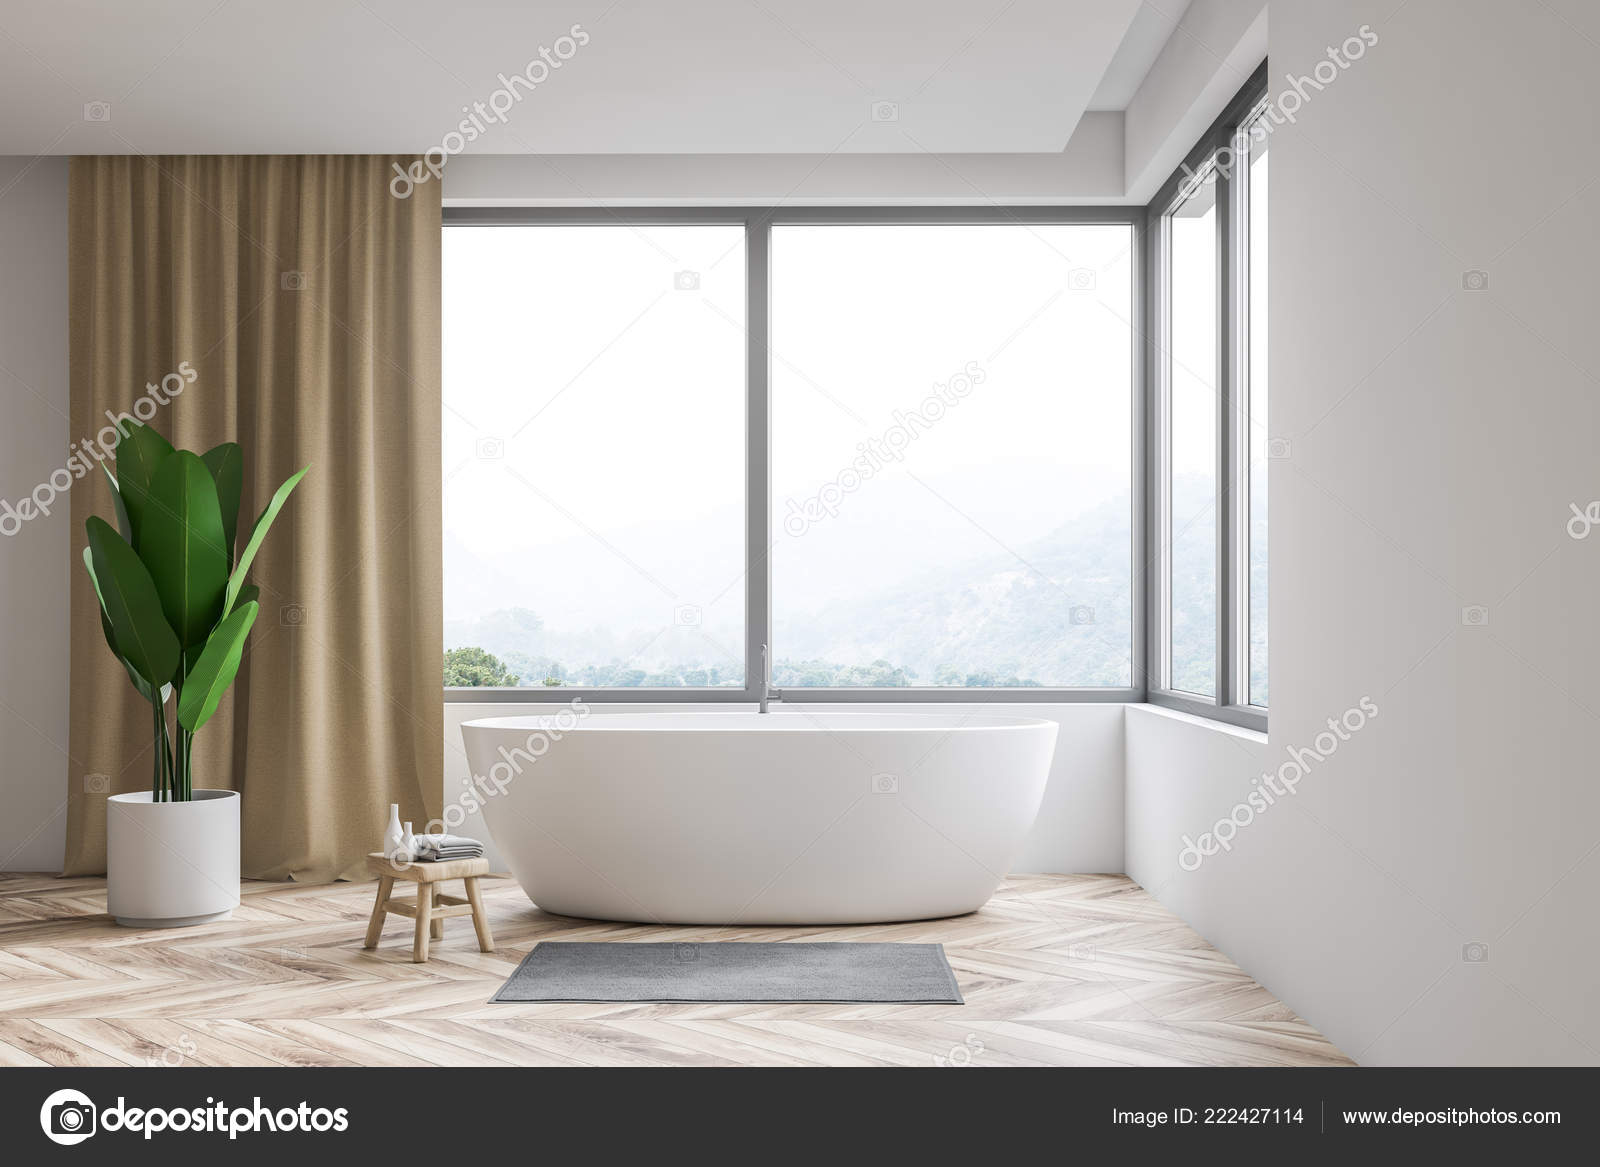 Bathtub Window Treatments Modern Bathroom Interior White Walls Wooden Floor Window Beige Curtains Stock Photo C Denisismagilov 222427114